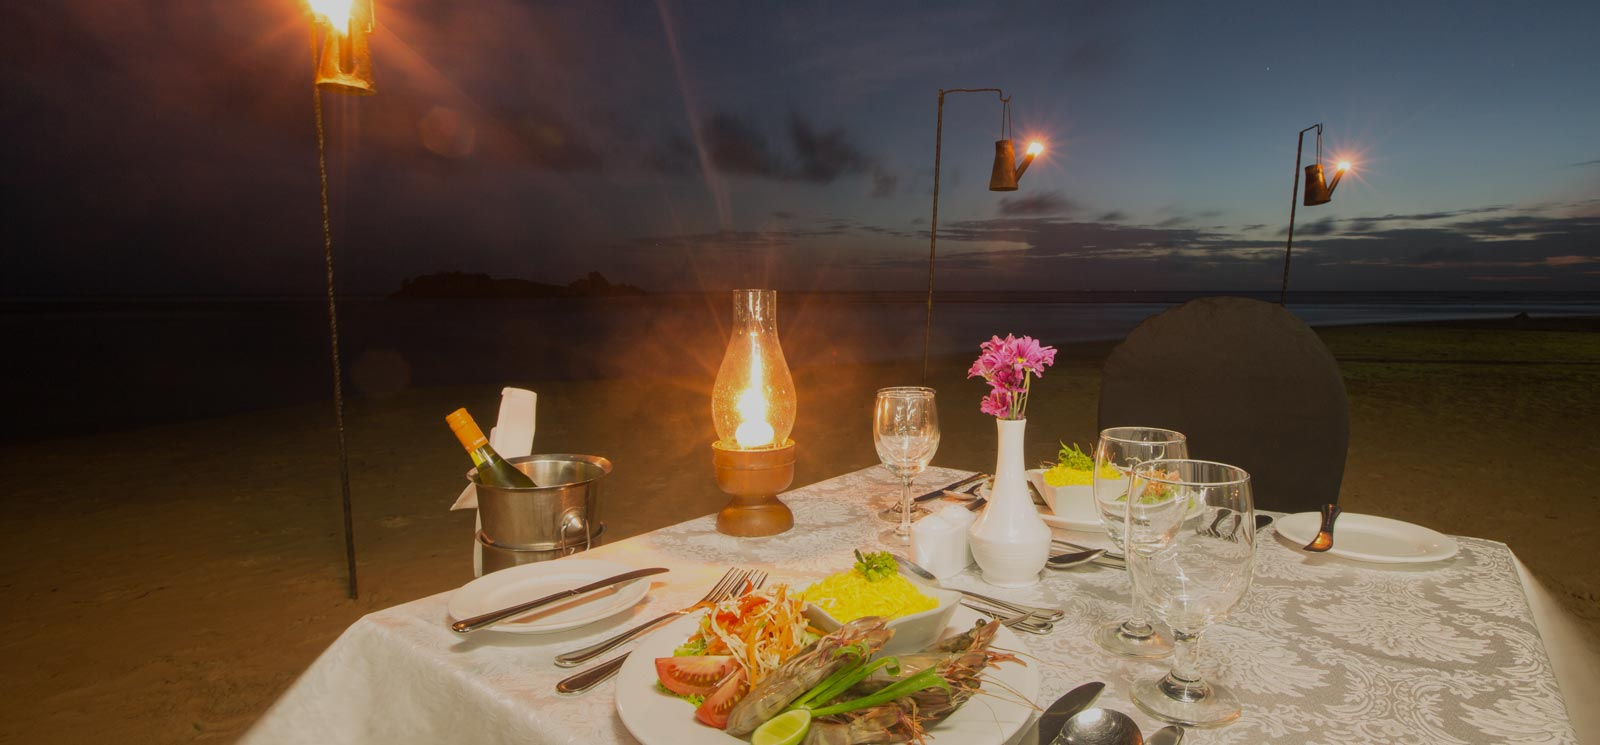 A unique dining experience on the beach at The Palms Hotel, Beruwala, Sri Lanka